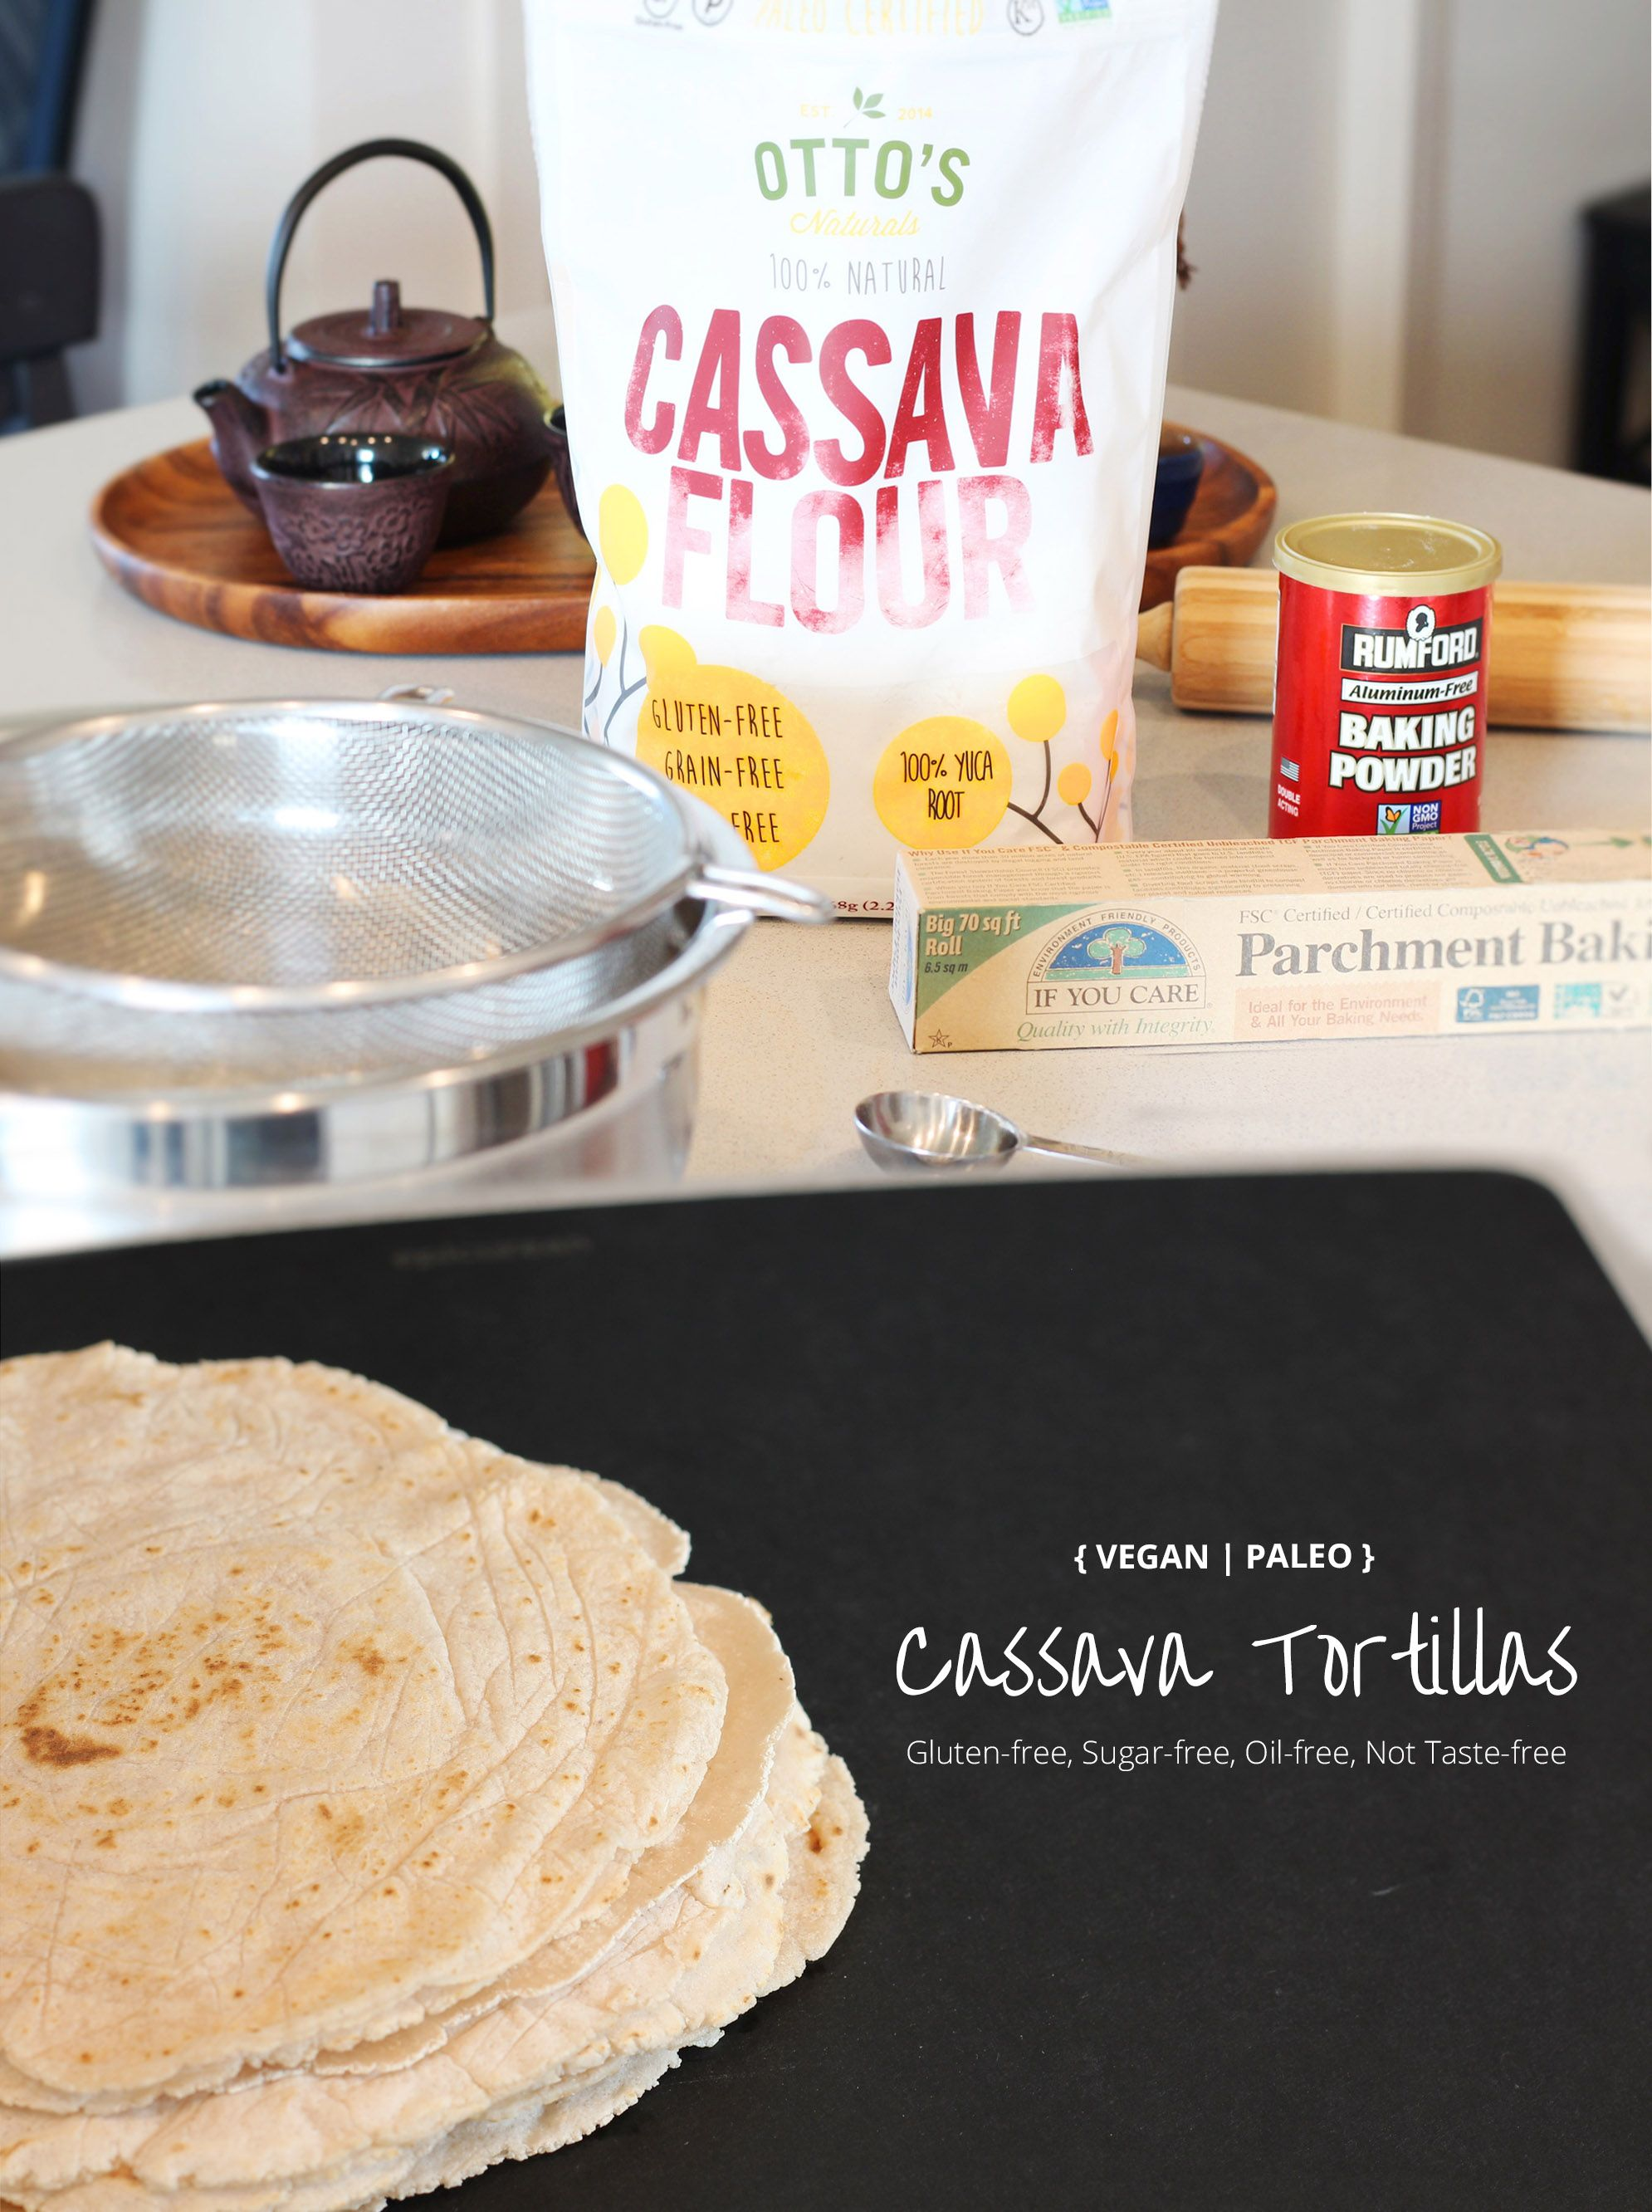 Ingredients:  2 cups Cassava flour 3/4 cups water  1 Tsp baking powder   1/2 hr. cook time  Makes approx. 9 wraps